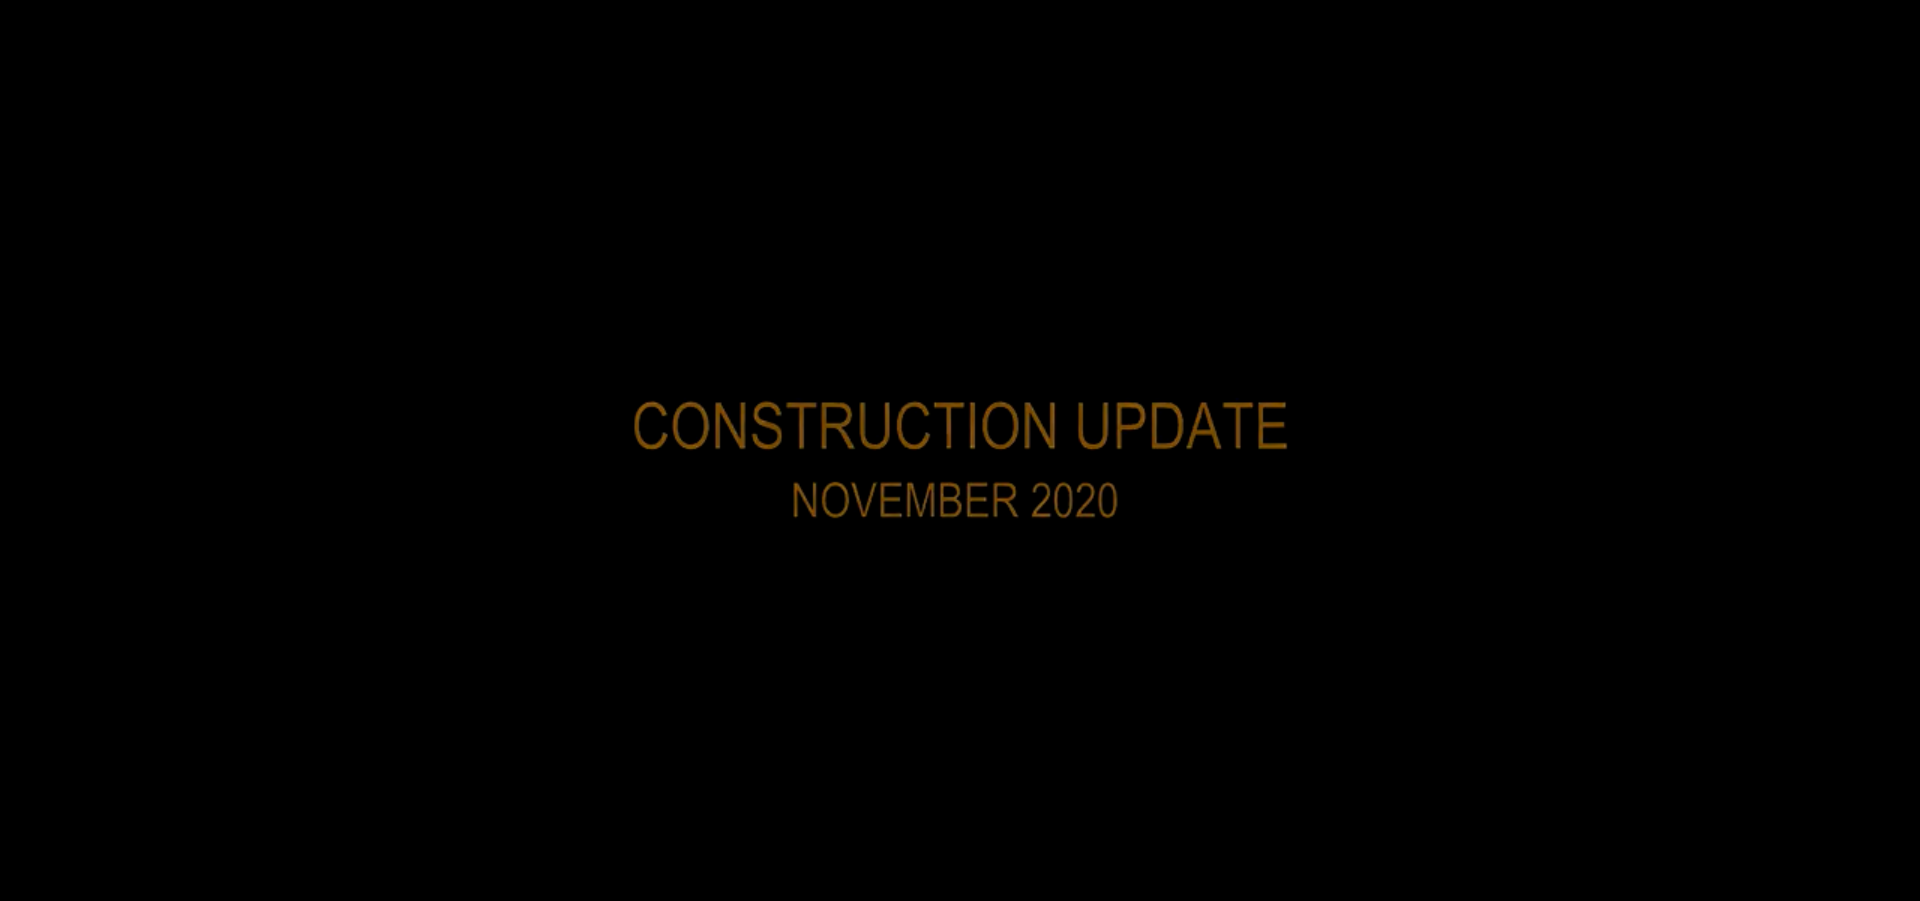 Scenario New Capital – Construction Progress